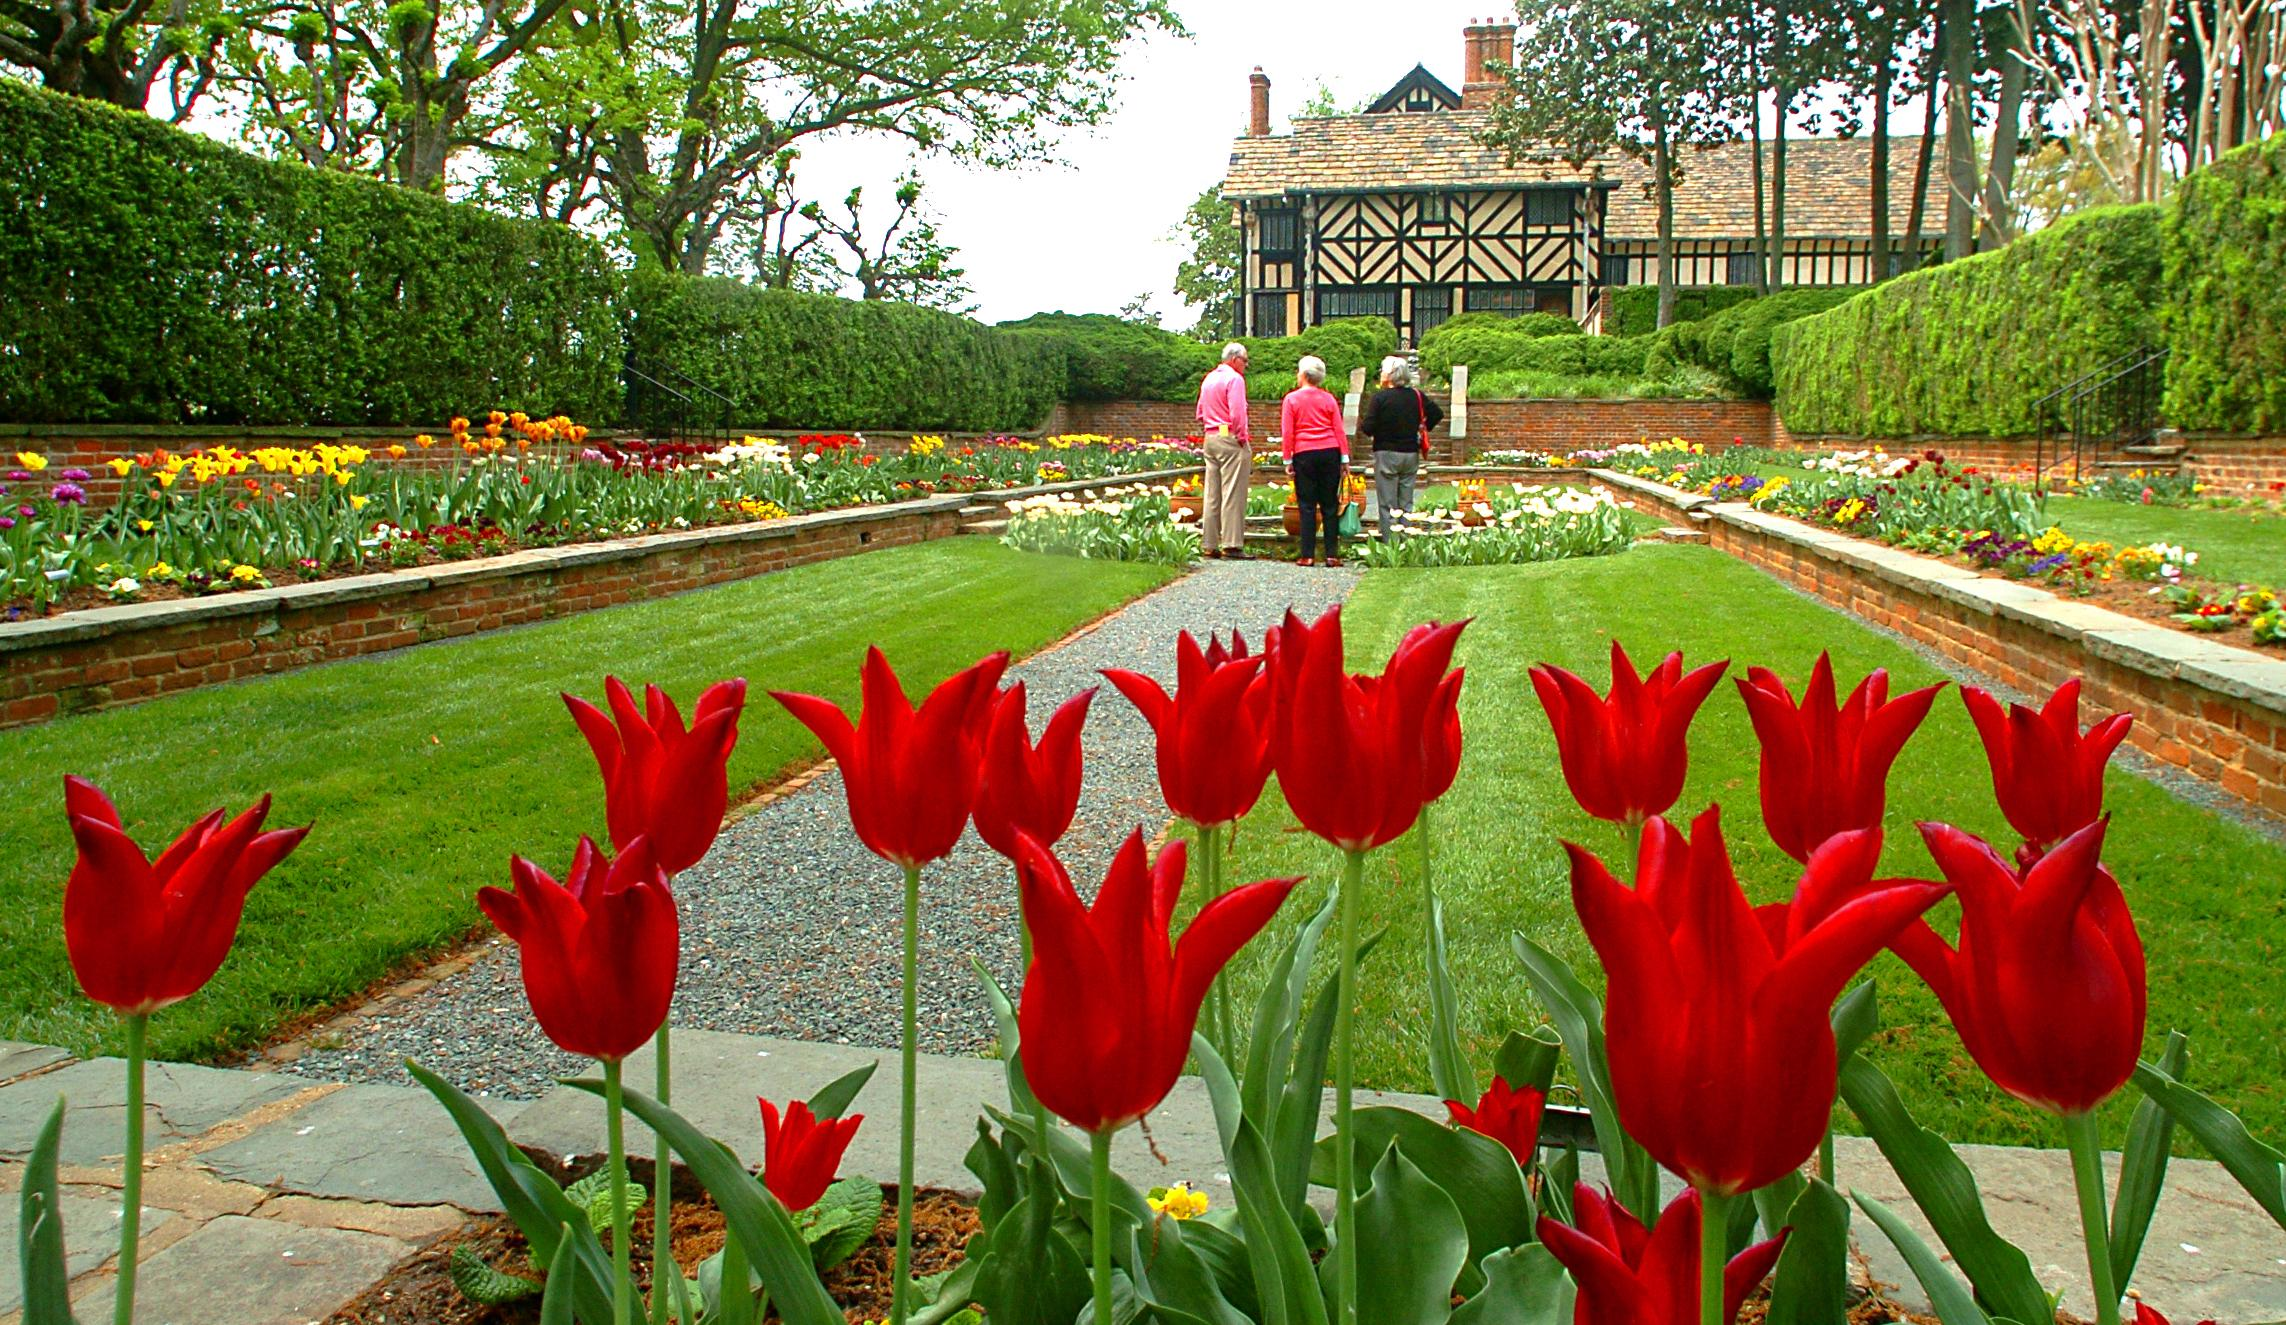 Agecroft Hall's gardens are scenic all year round.{ }(Image: Michael Solender)